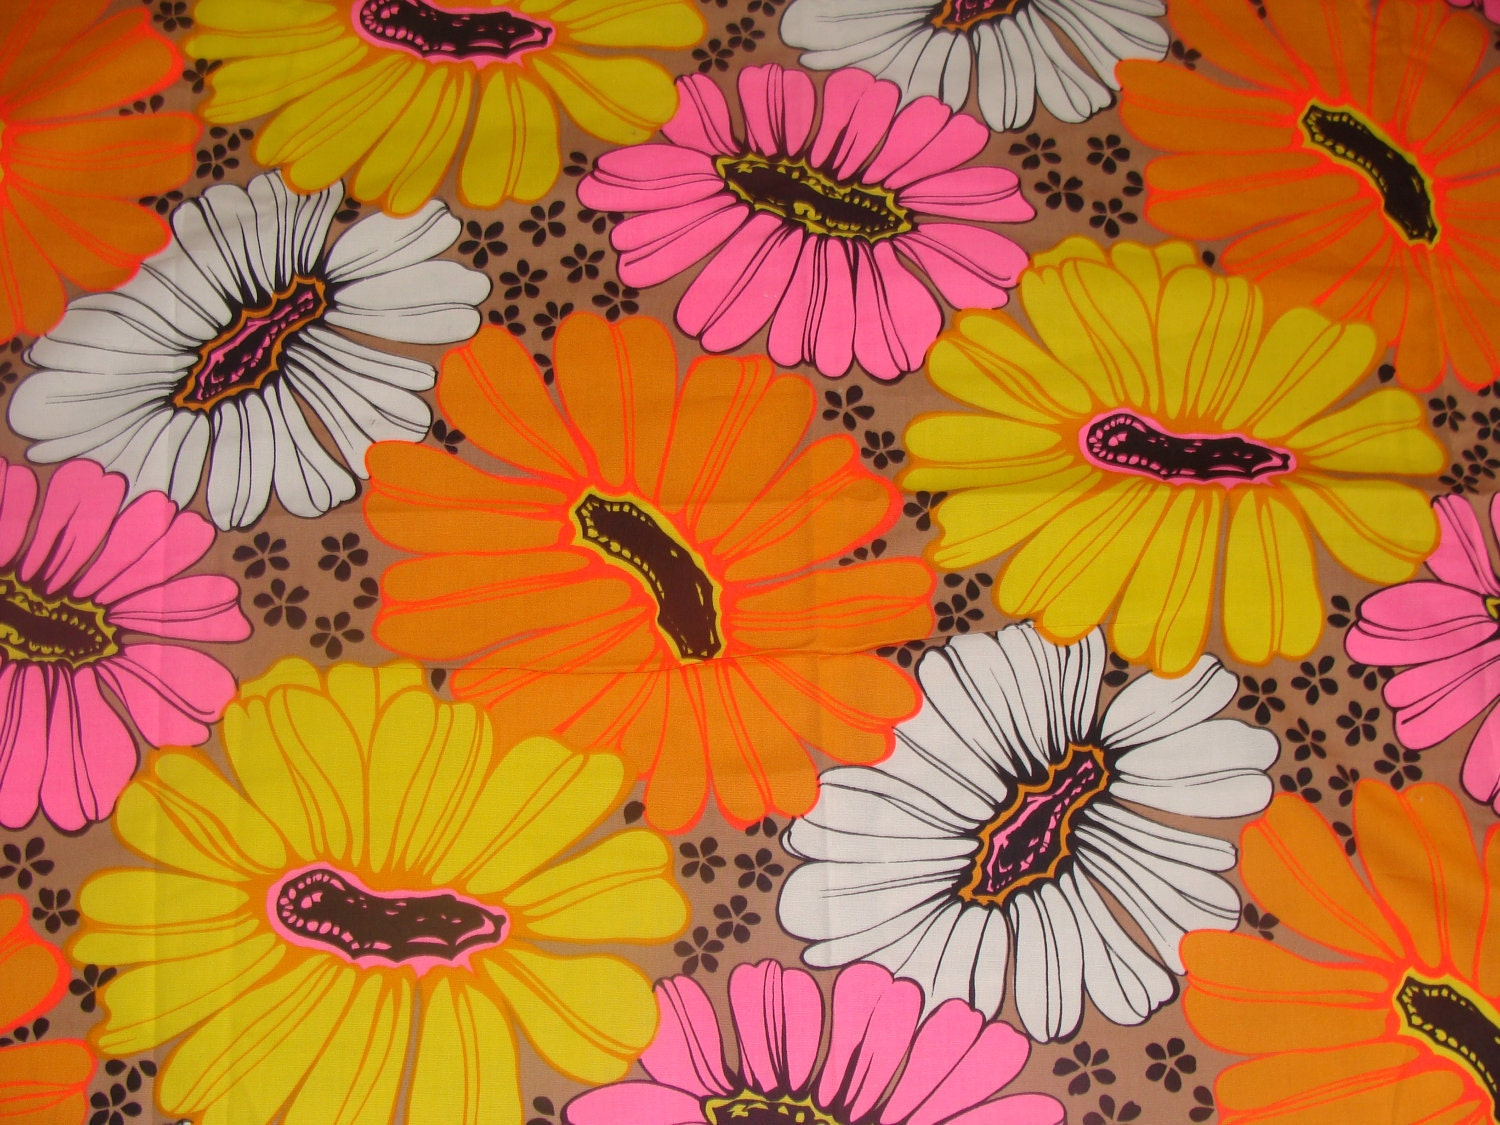 Vintage 1960s Super Hot 200 East x 141 Psychadelic Hippie Huge daises Barkcloth Girls Garden Flower Power Fabric Yardage 22 x 36